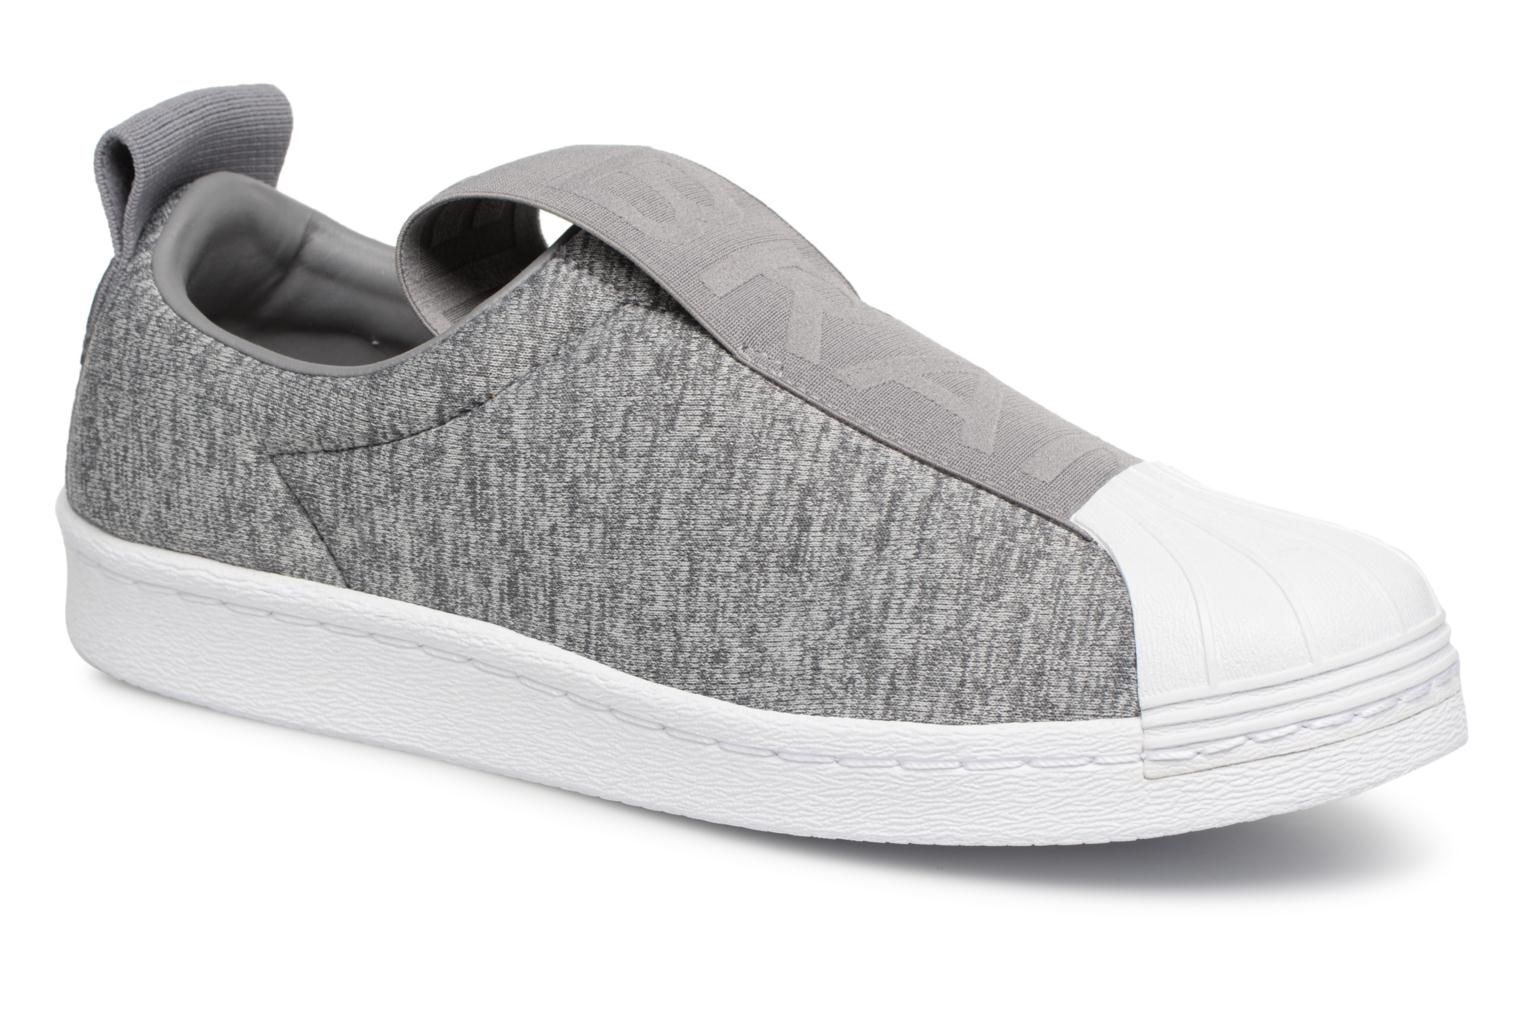 Adidas Originals Superstar Bw3S Slipon W (Grey) Trainers